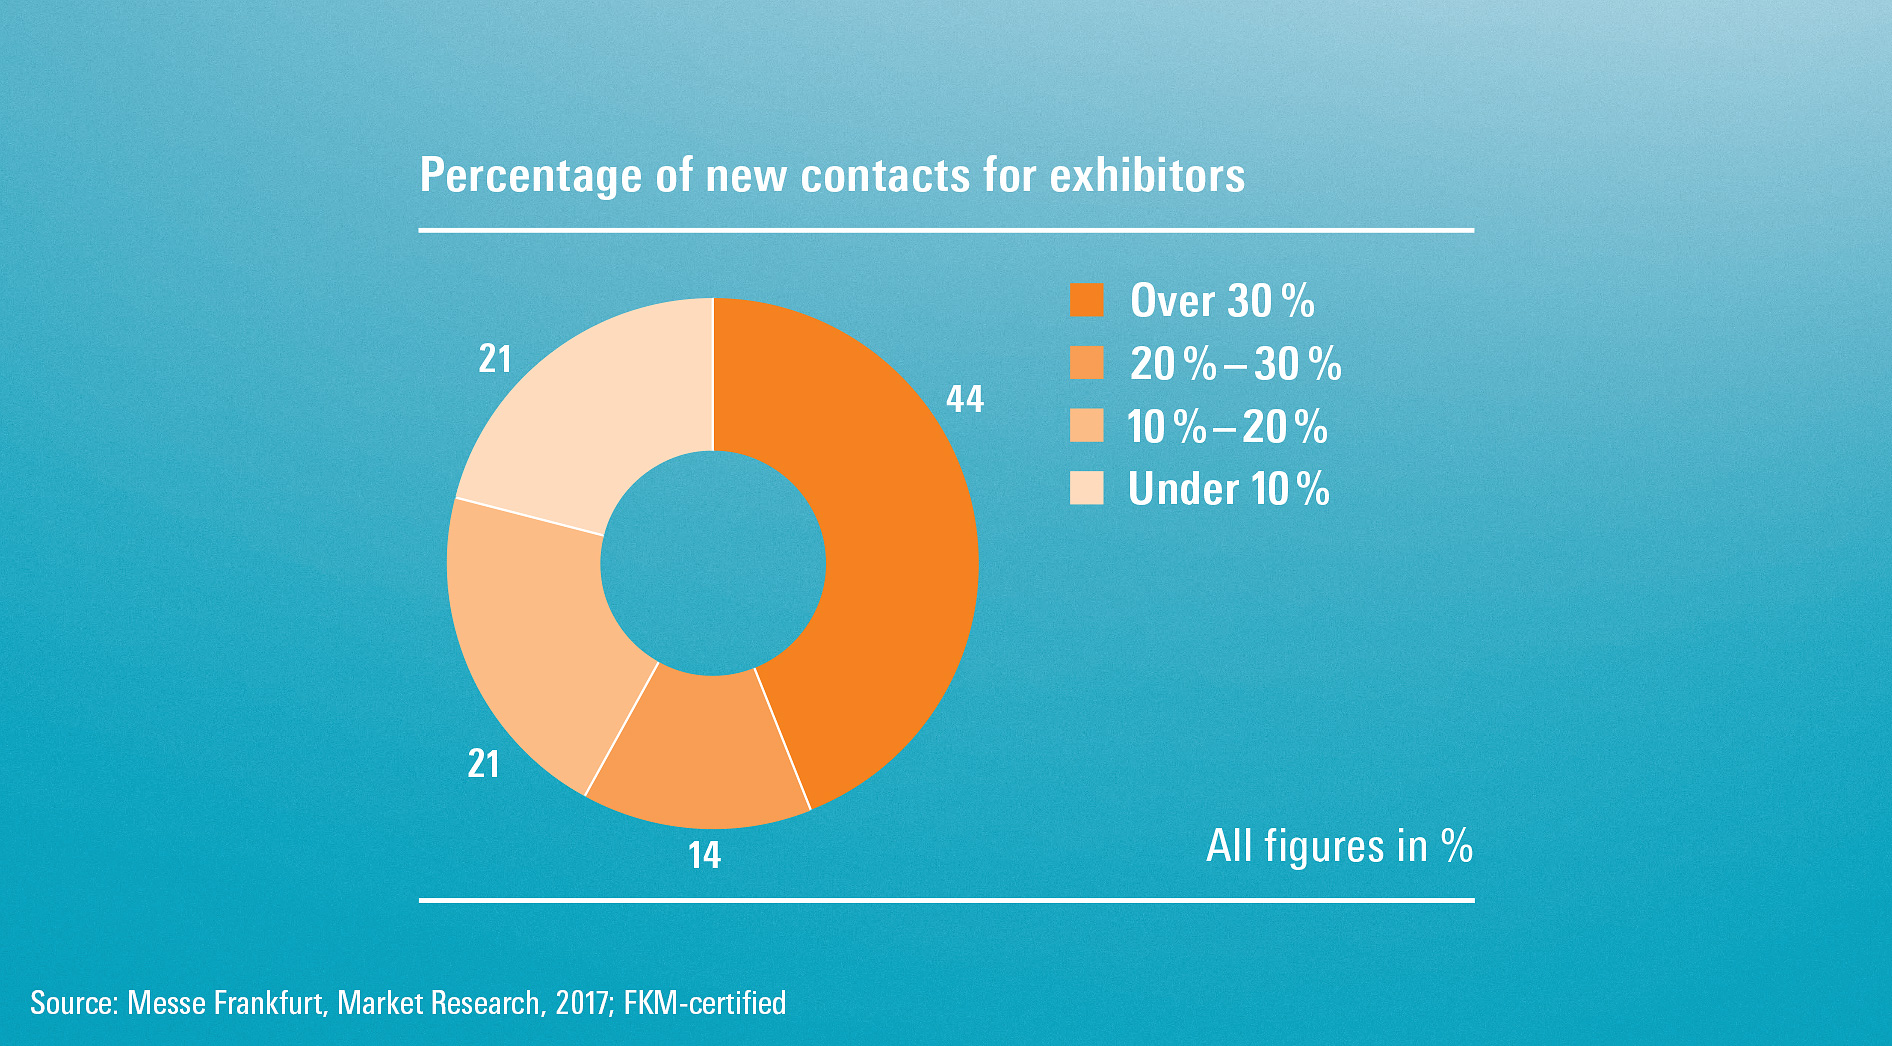 Percentage of new contacts for exhibitors